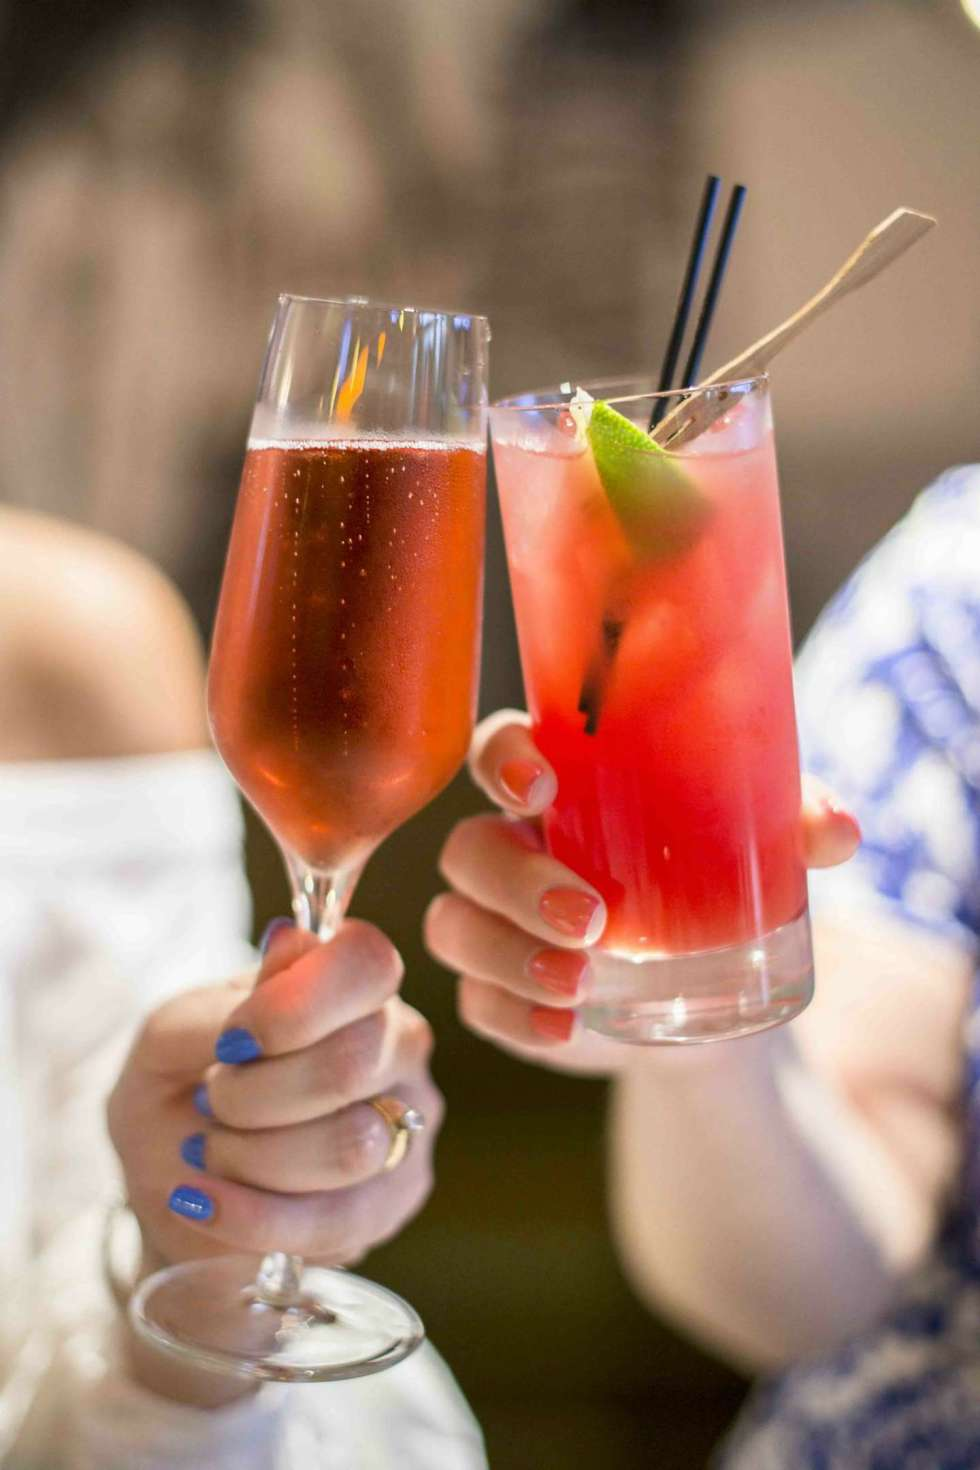 41Hundred Happy Hour at the Raleigh Renaissance Hotel by NC blogger I'm Fixin' To @mbg0112